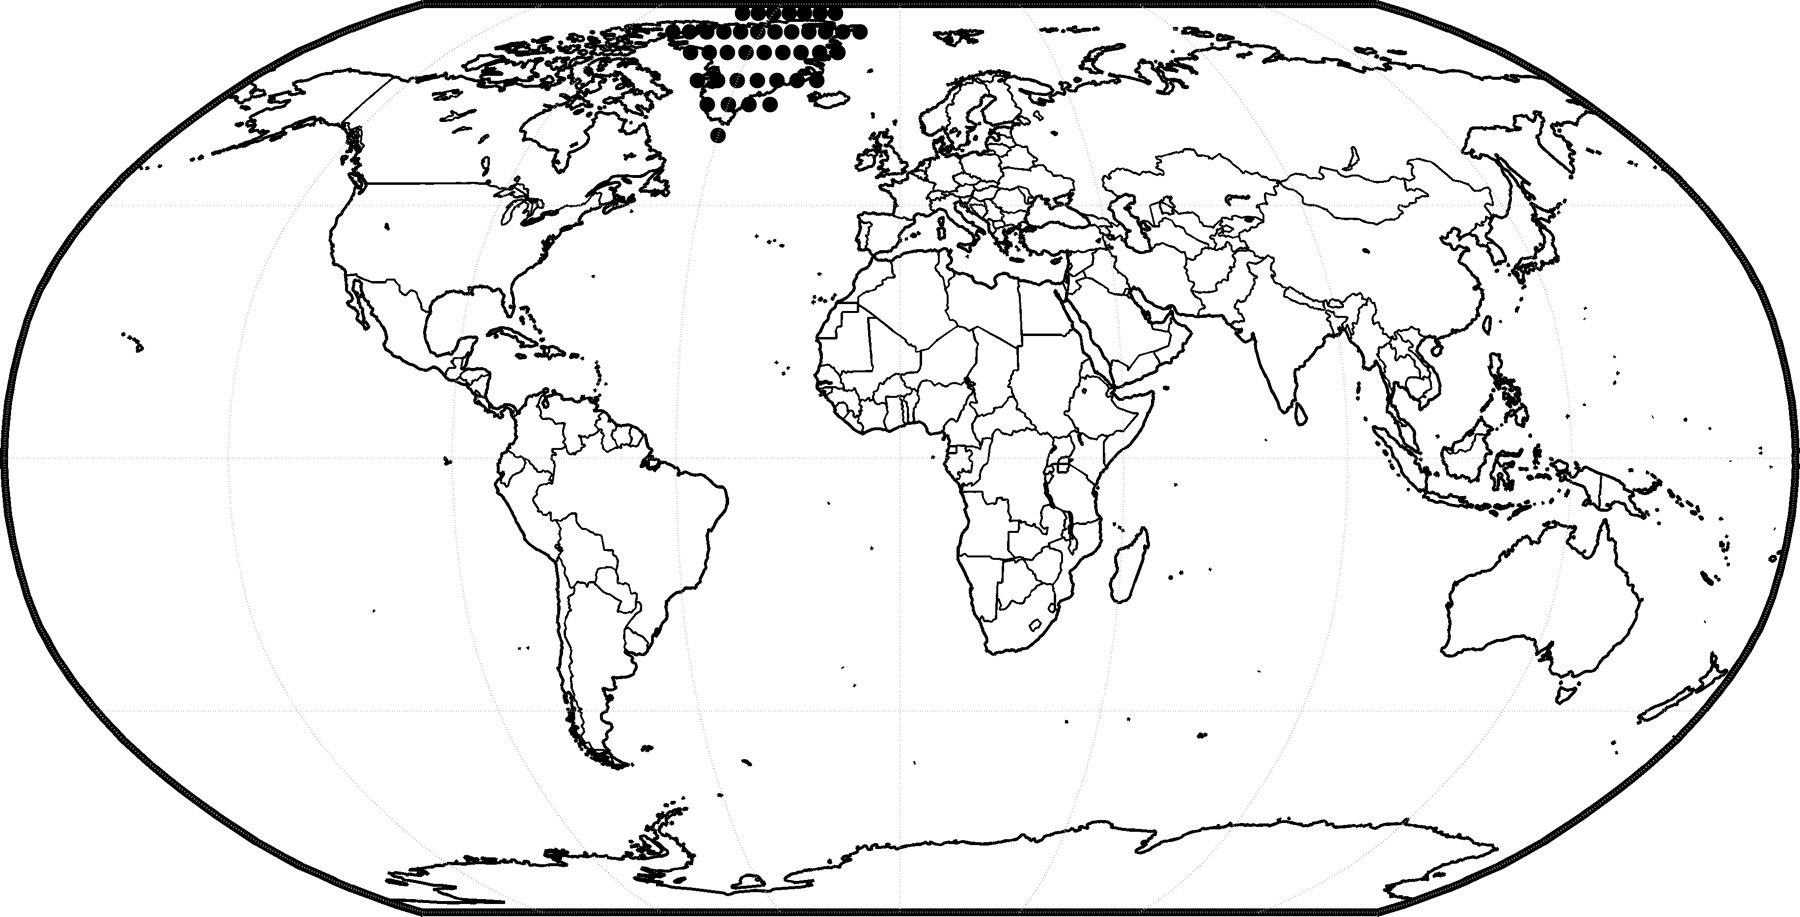 Earth map drawing at getdrawings free for personal use earth 1800x917 biome map of the us drawing maps online world atlas blank color gumiabroncs Images